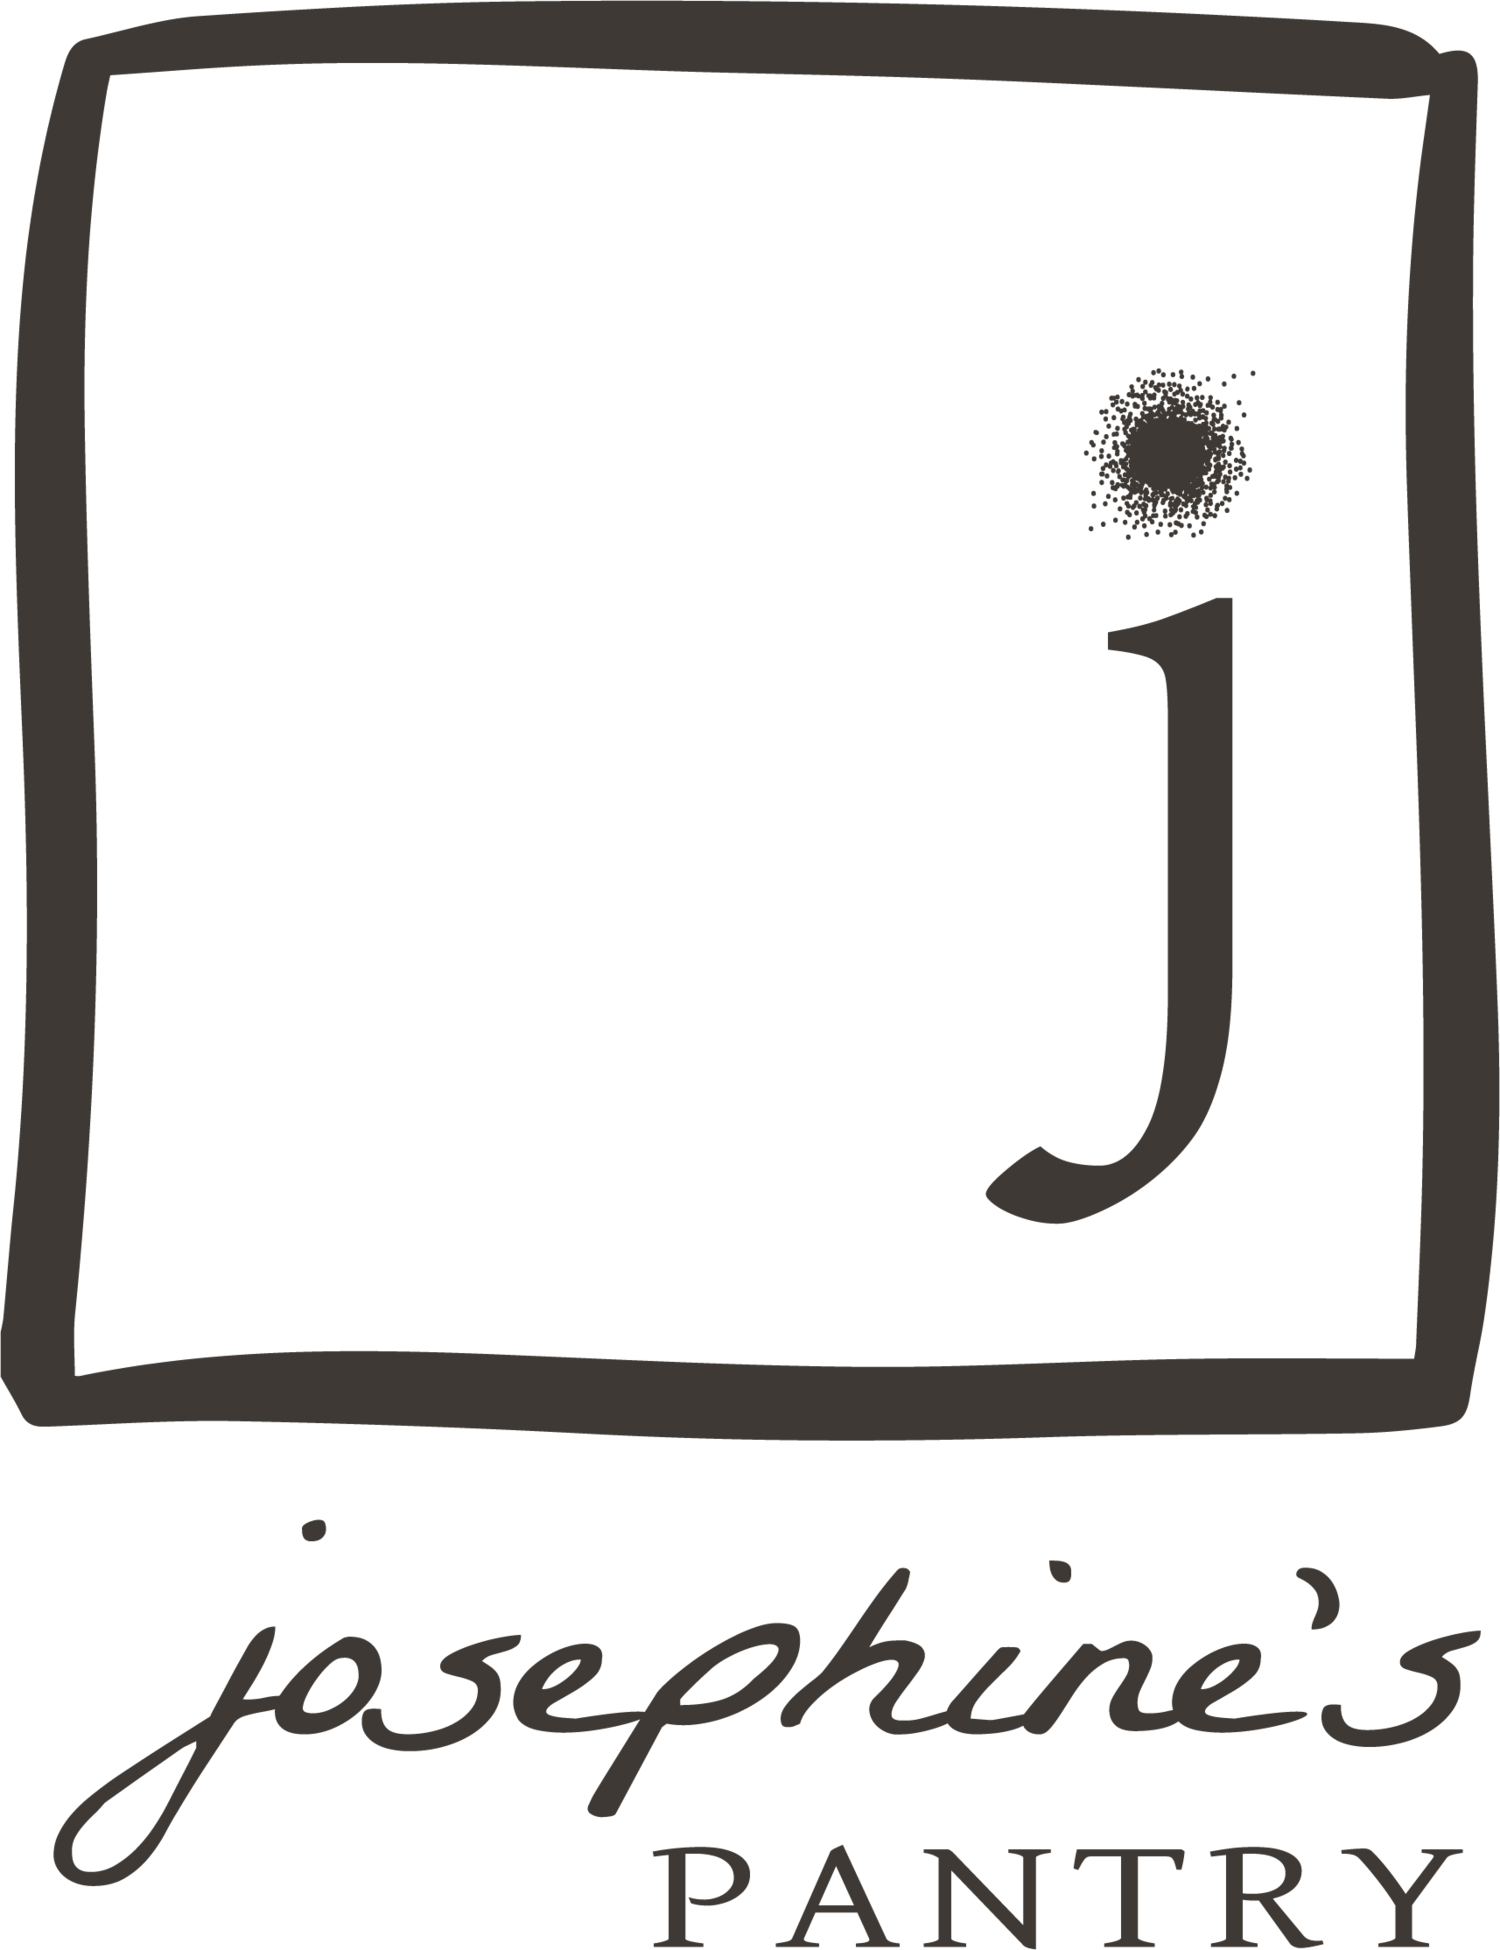 Footsteps clipart success. Josephine s pantry